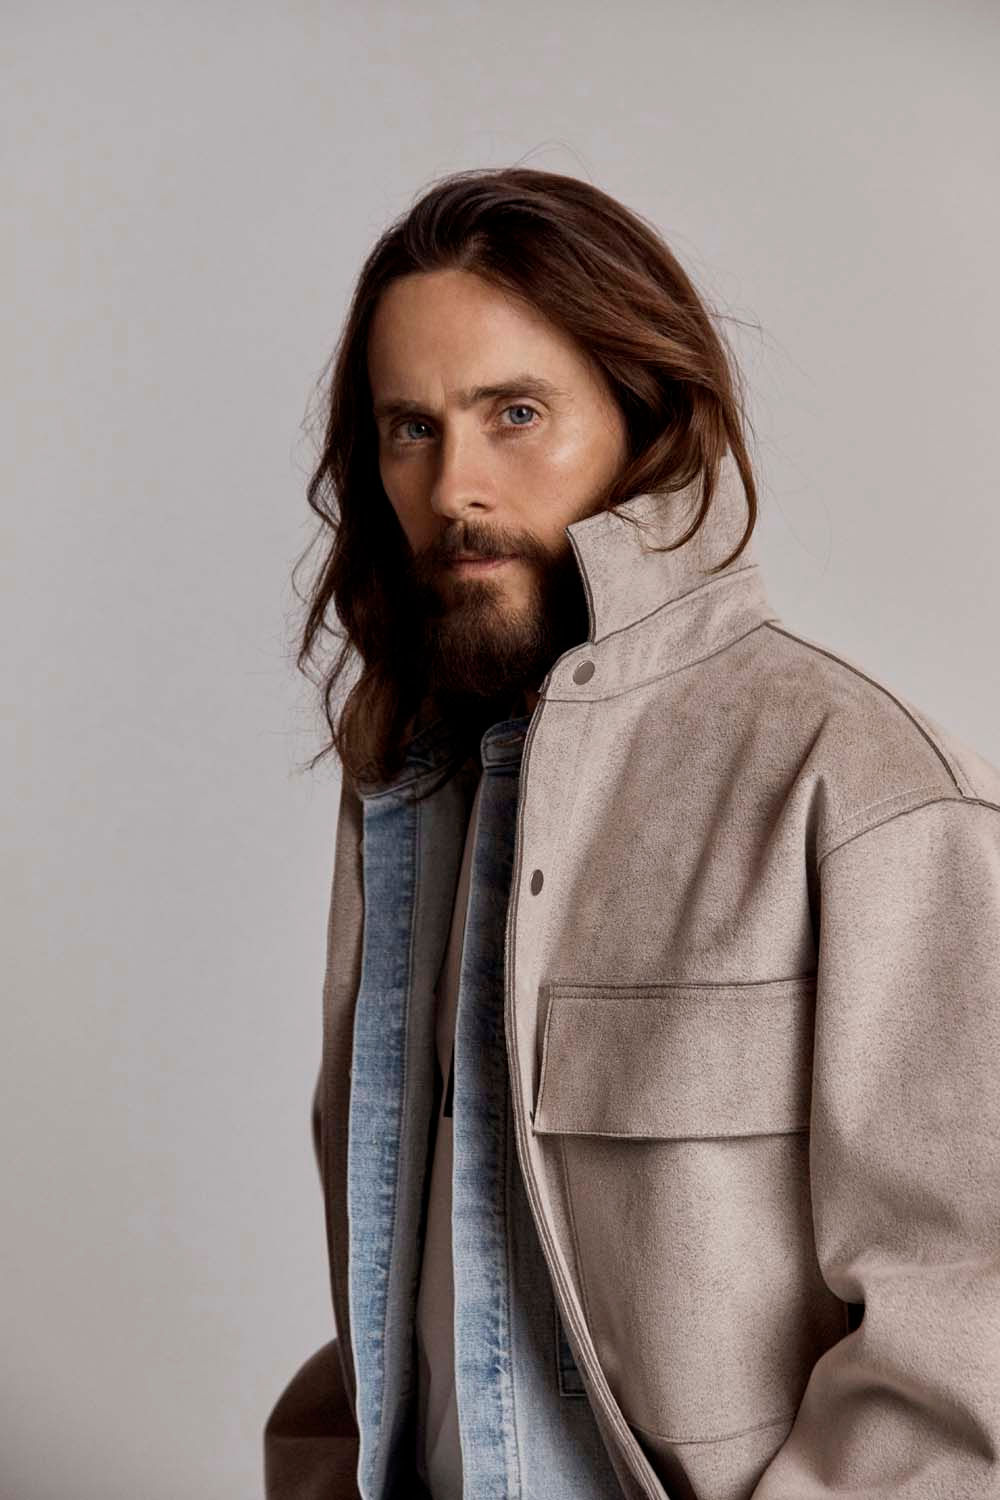 https_%2F%2Fhypebeast.com%2Fimage%2F2018%2F09%2Ffear-of-god-6-sixth-collection-jared-leto-nike-04.jpg